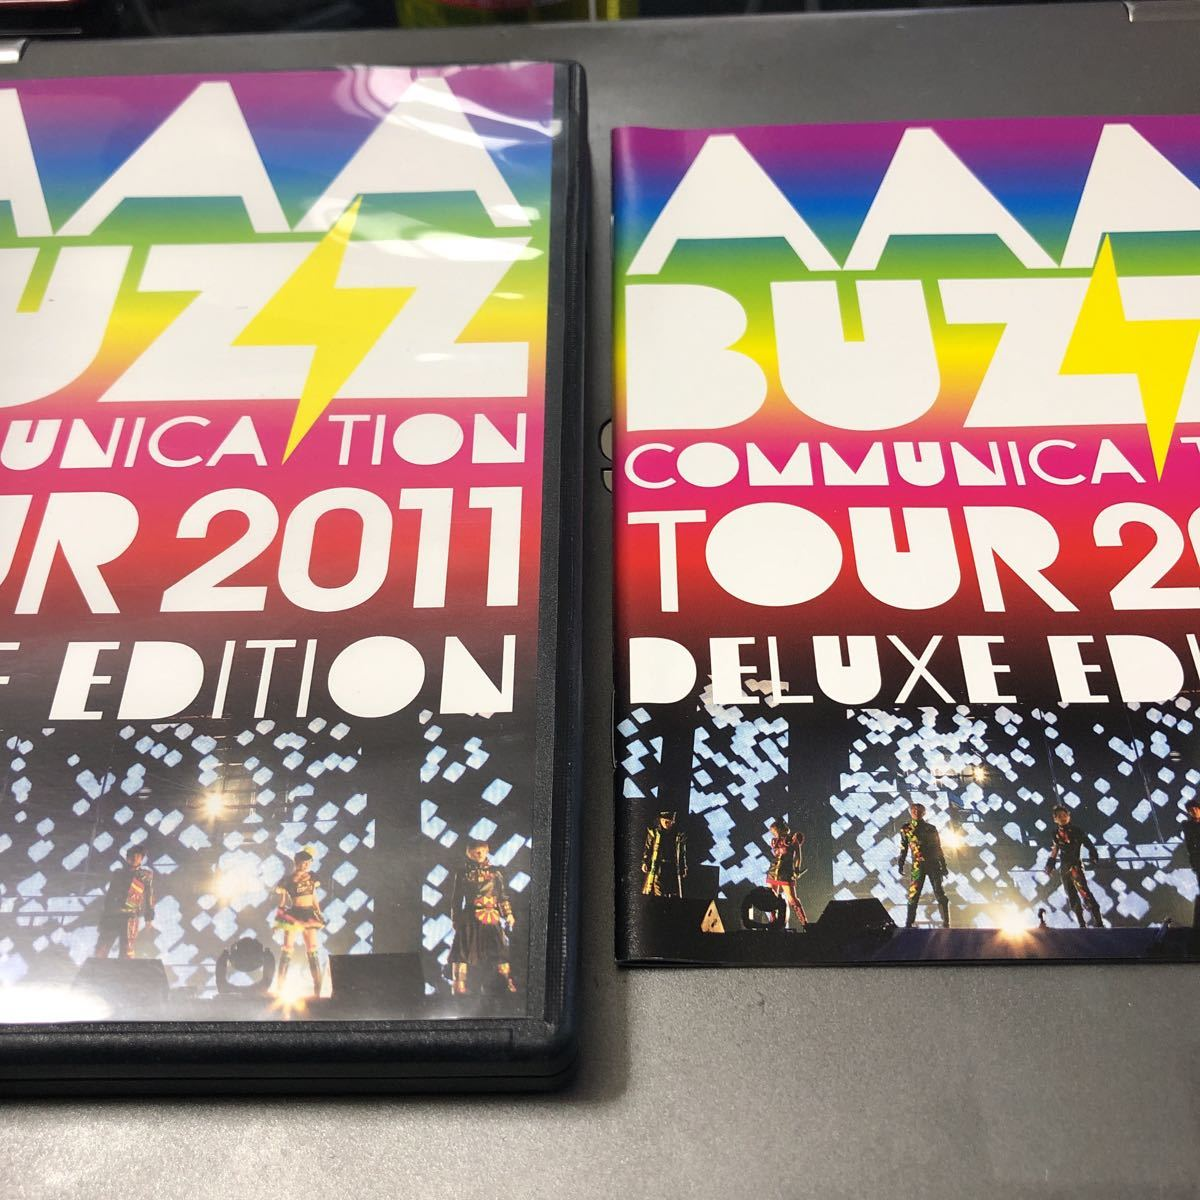 AAA BUZZ COMMUNICATION TOUR 2011 DELUXE EDITION [DVD]